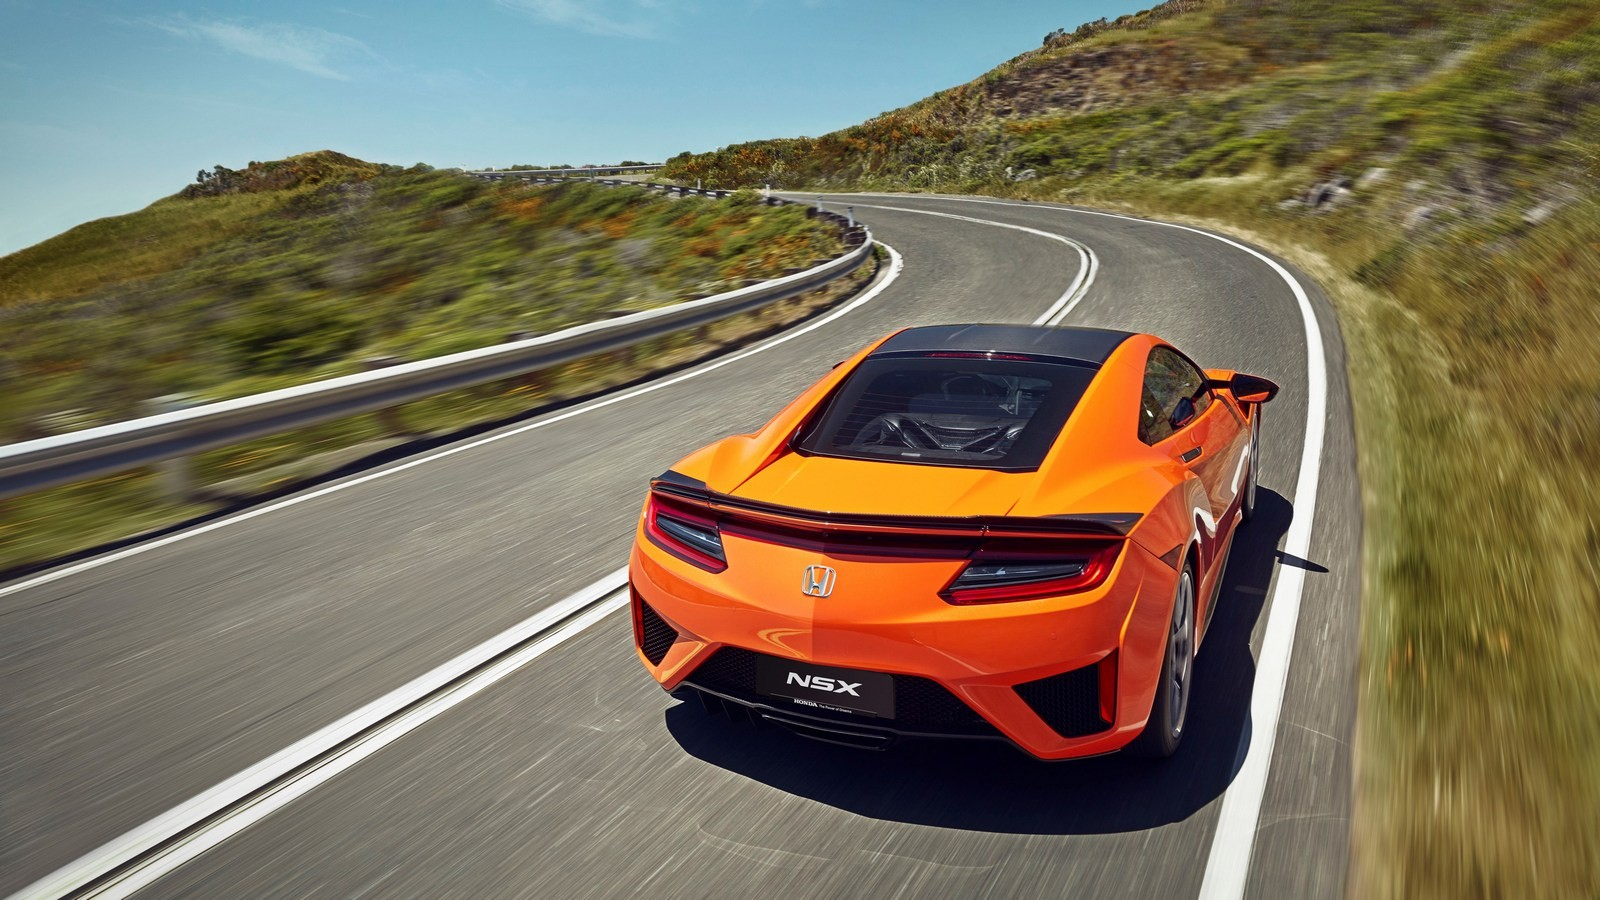 Honda further enhances capabilities of its ground-breaking NSX hybrid supercar